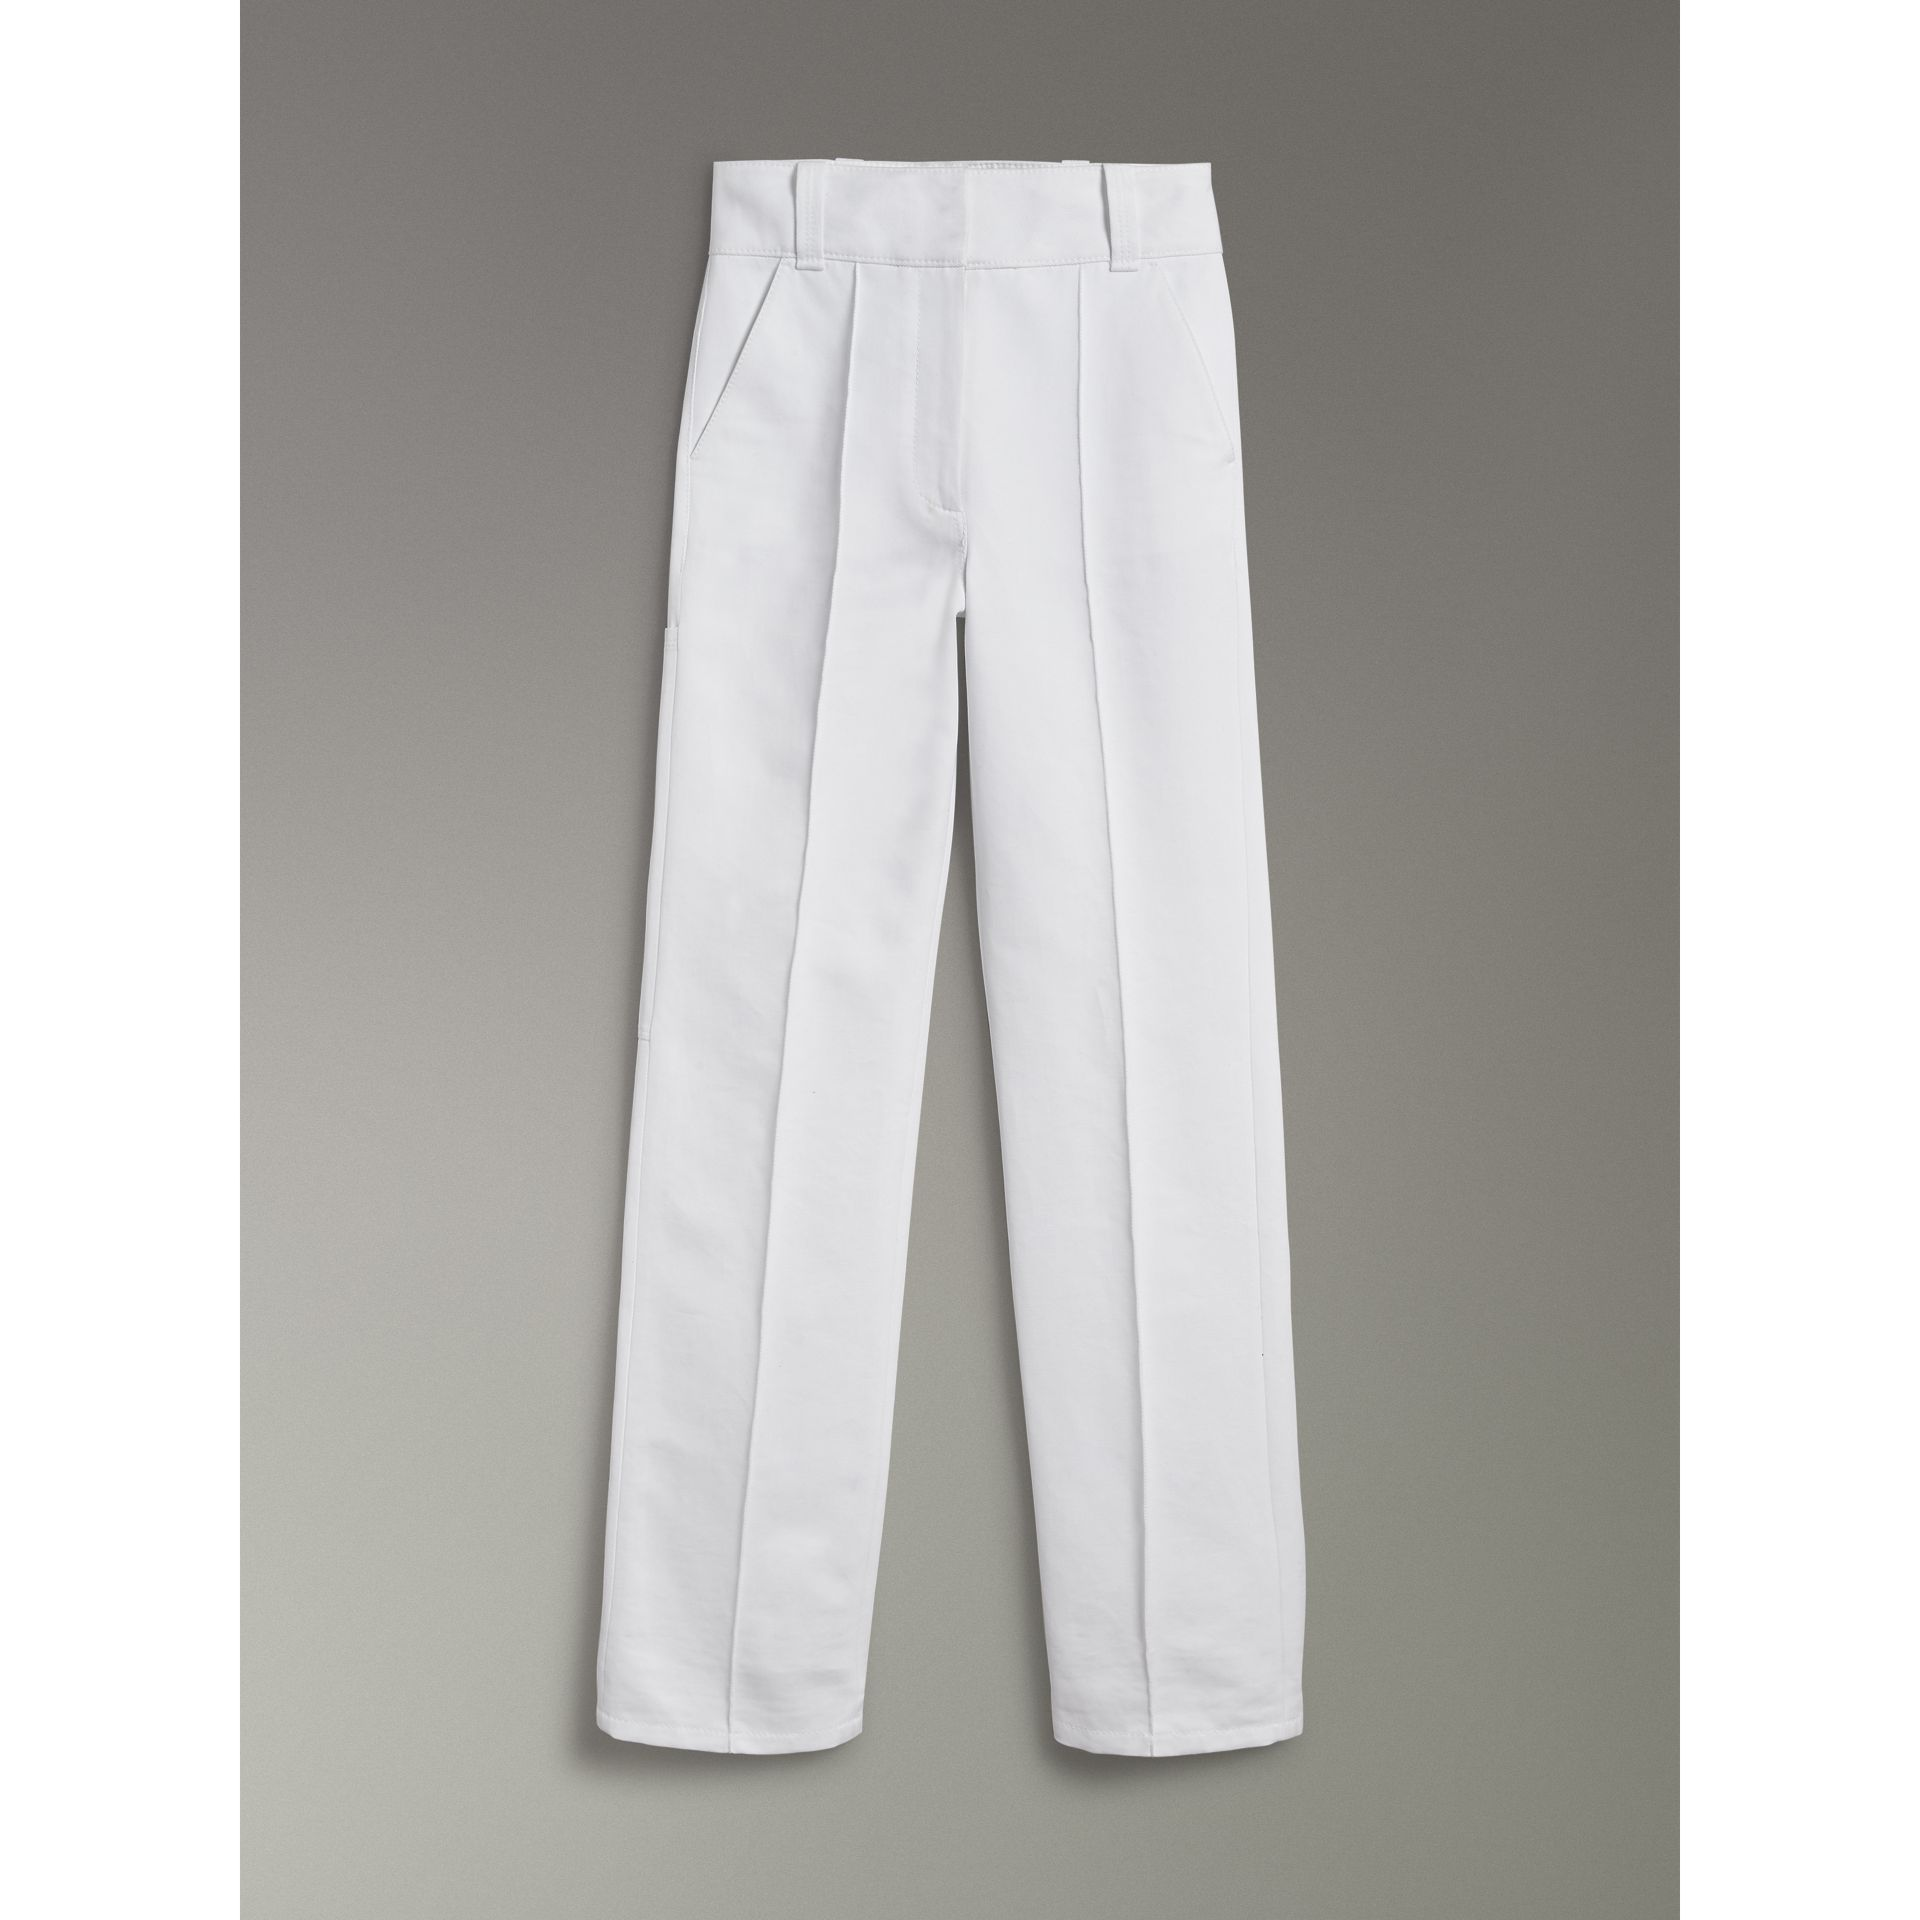 Cotton Drill High-waisted Trousers in White - Women | Burberry United Kingdom - gallery image 3